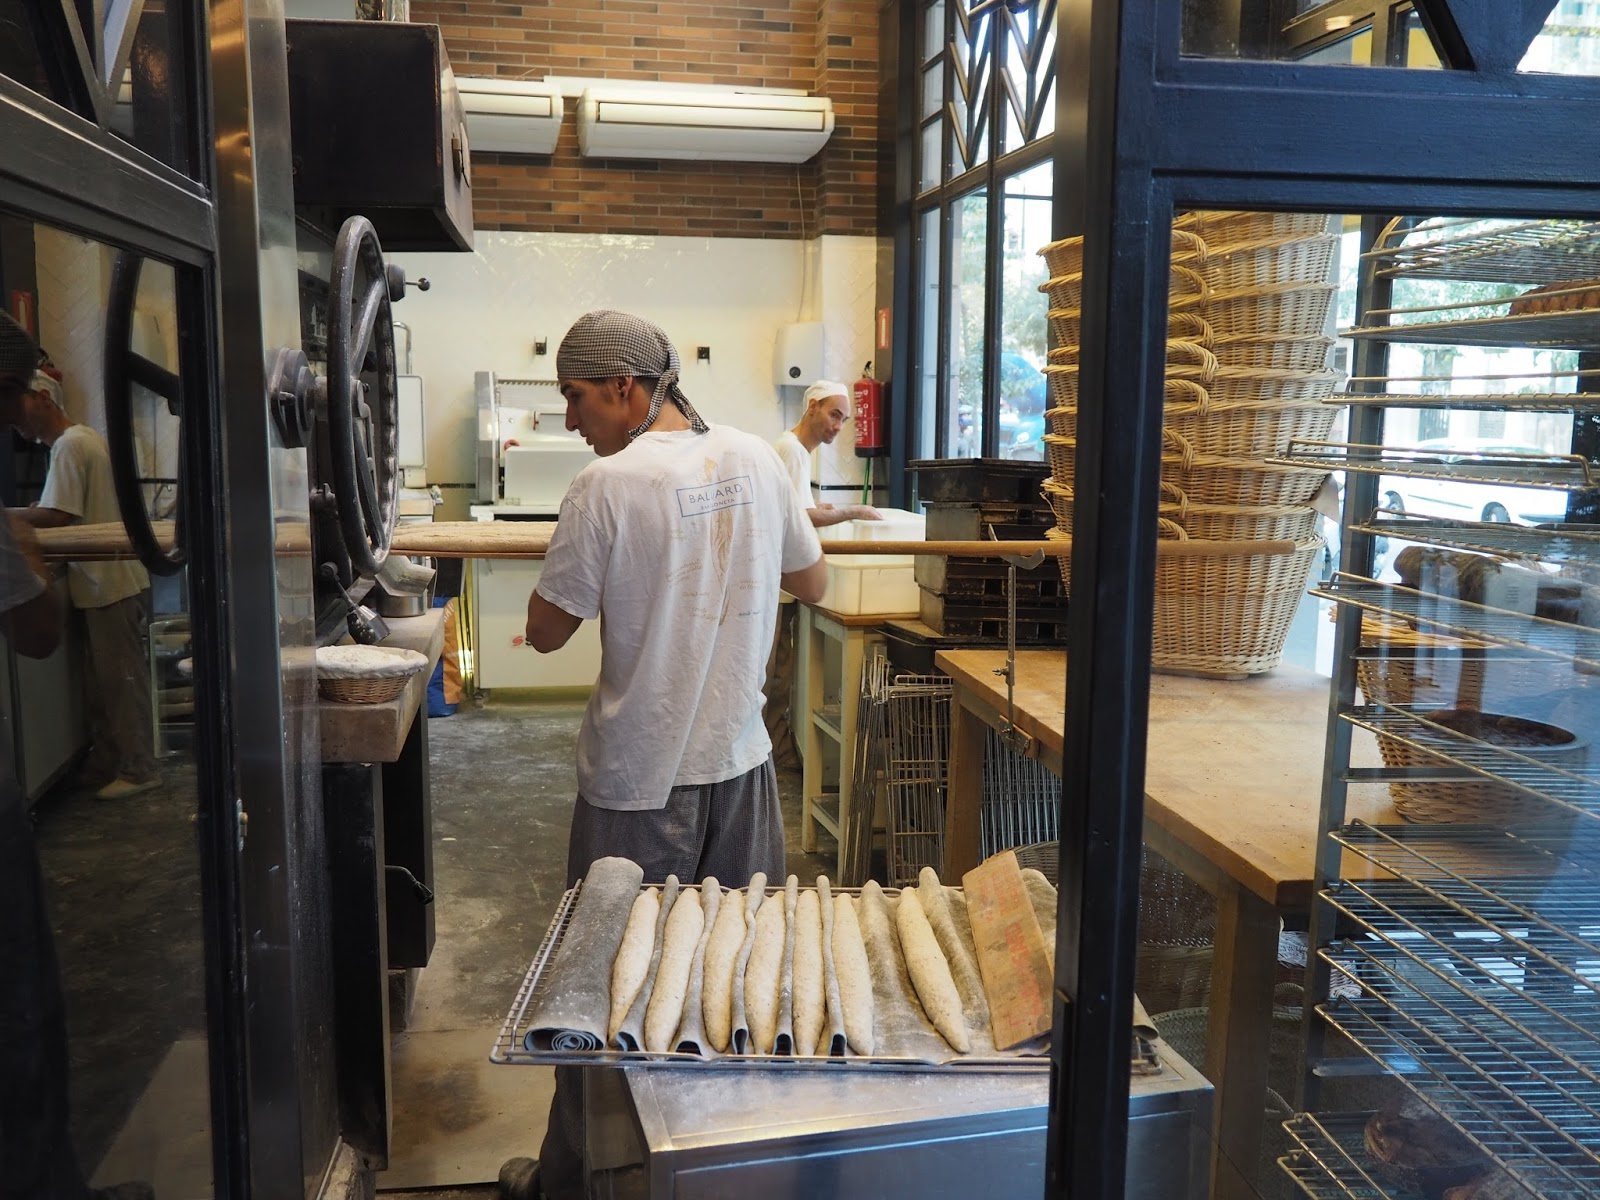 Barcelona Baluard Cafe Bakery Food Bakers Blog Post Review